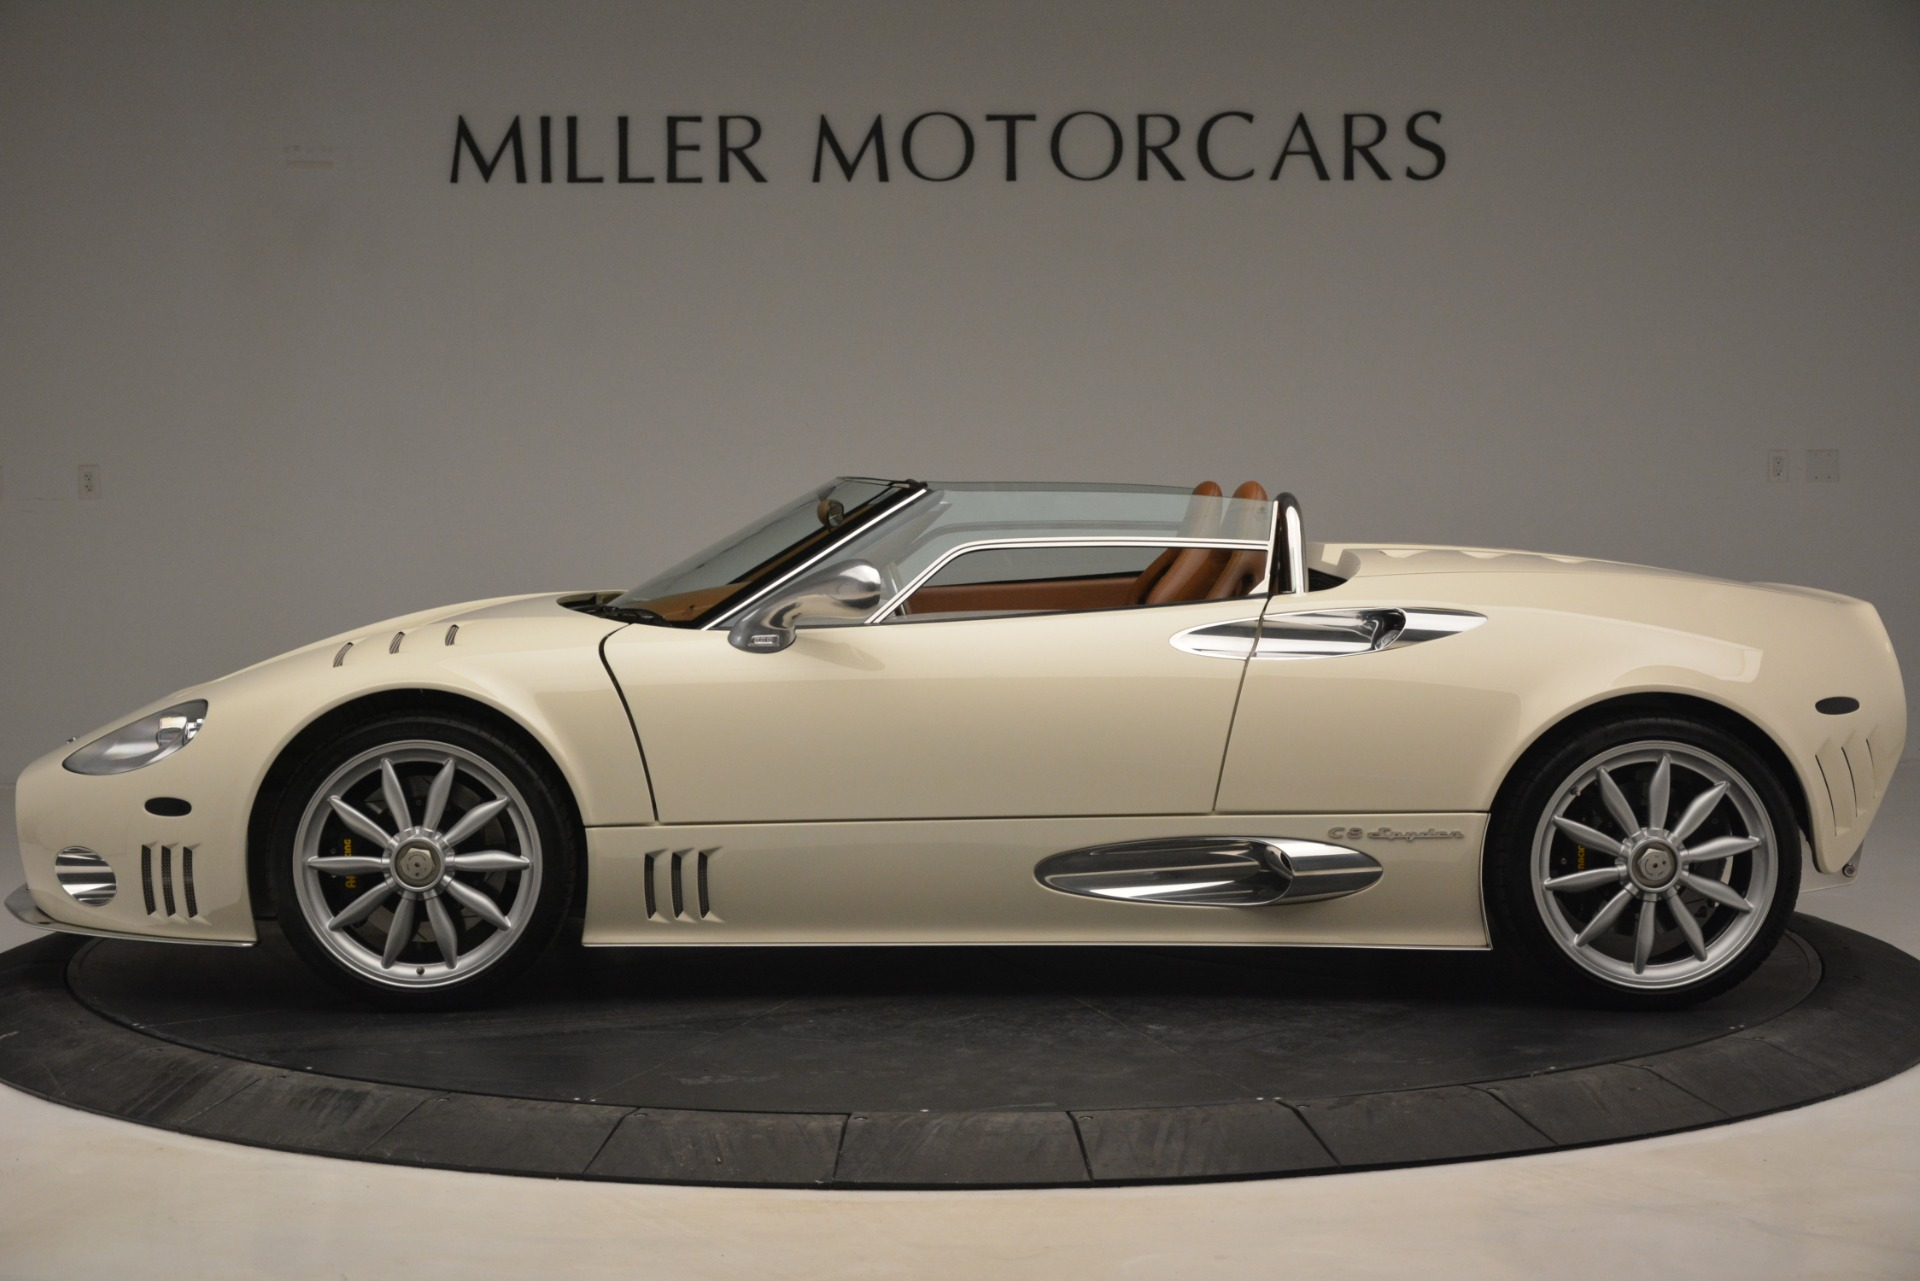 Used 2006 Spyker C8 Spyder  For Sale In Greenwich, CT 1661_p3